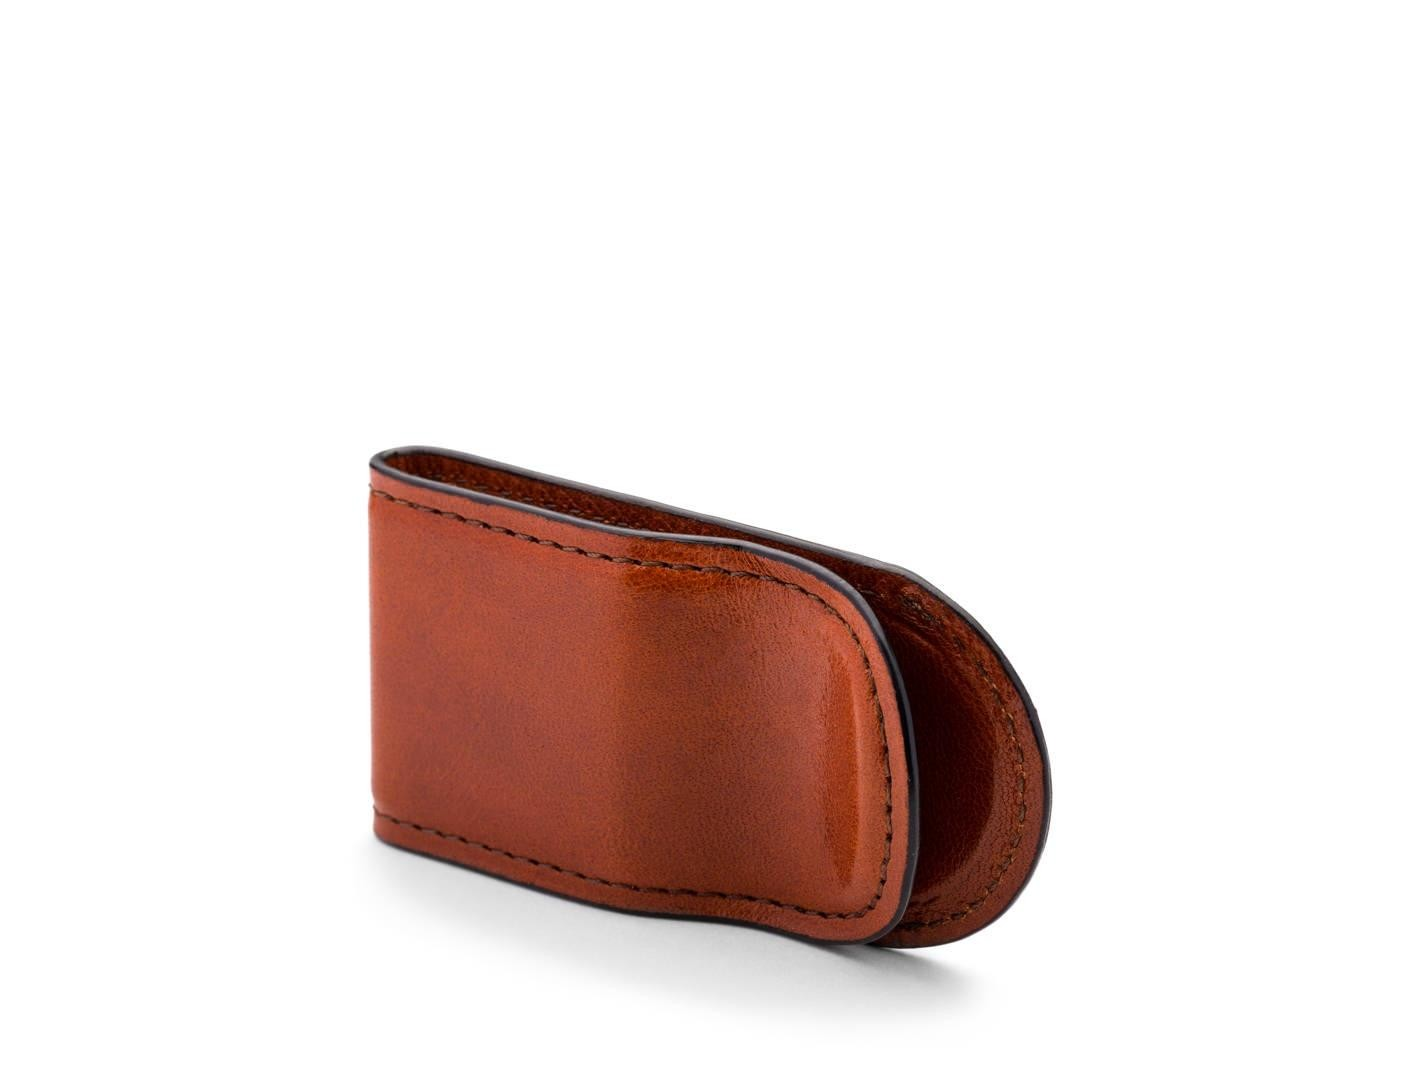 Leather Covered Money Clip